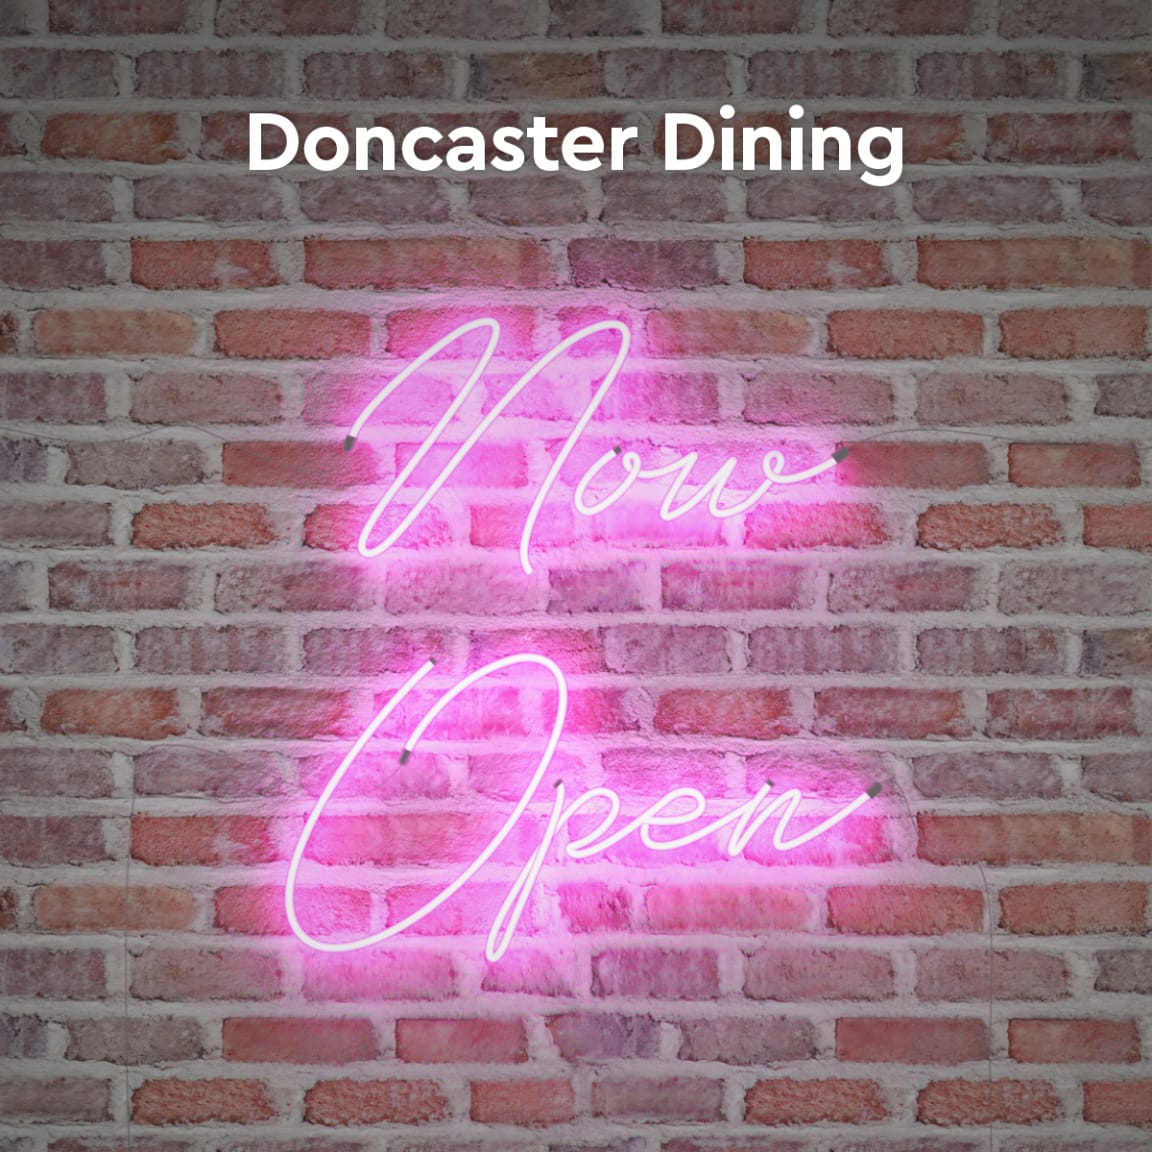 Doncaster Dining: No ordinary rooftop